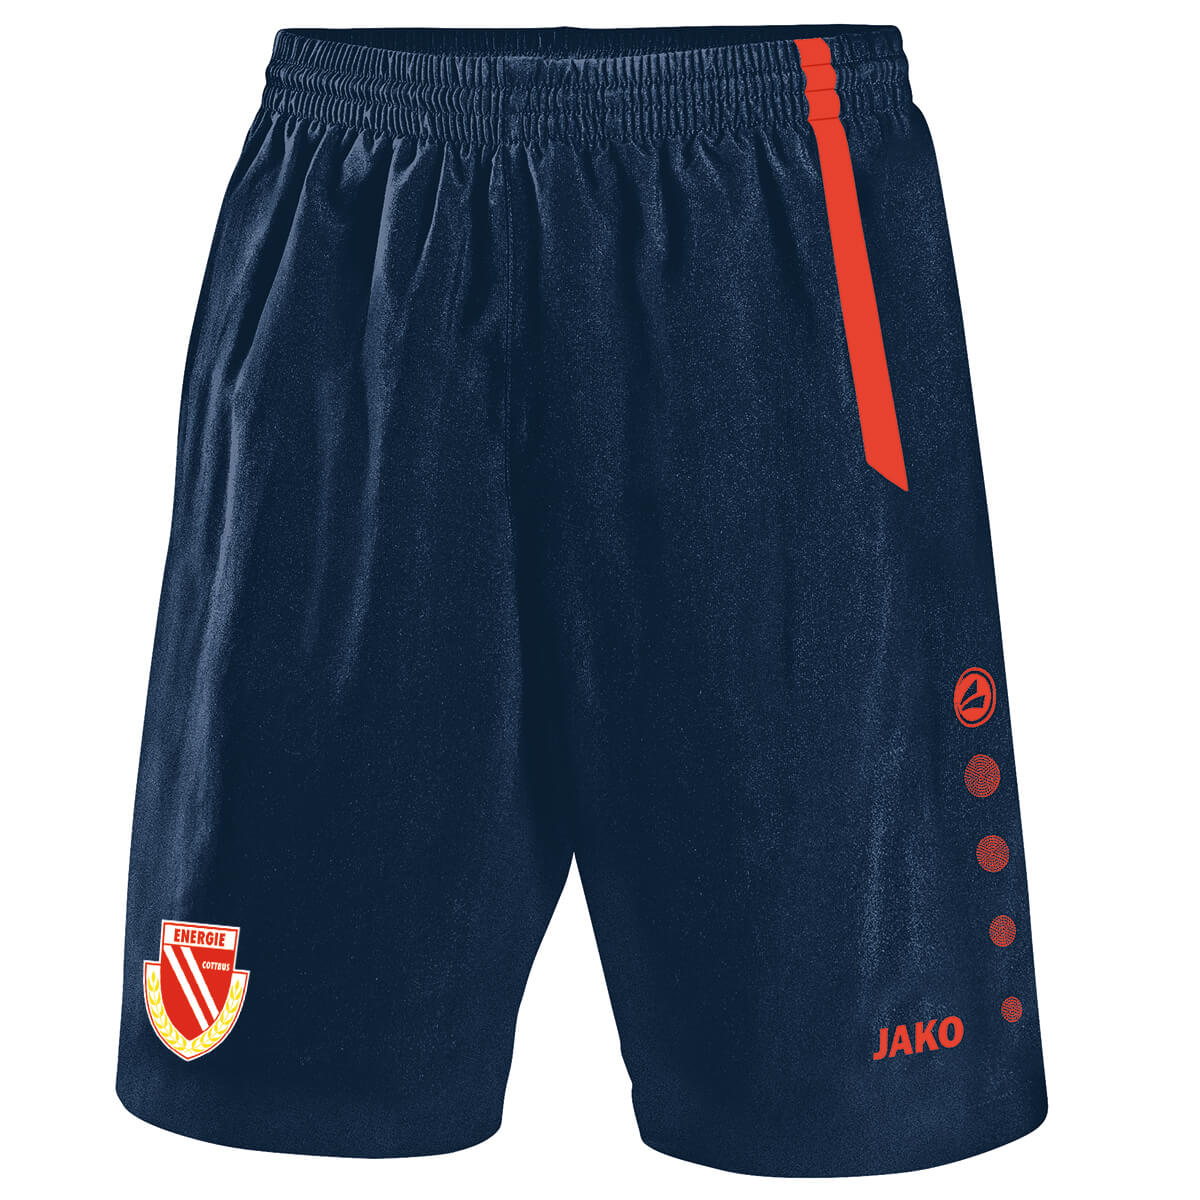 FC Energie Cottbus Short Away - Kinder | Jako CO4419A